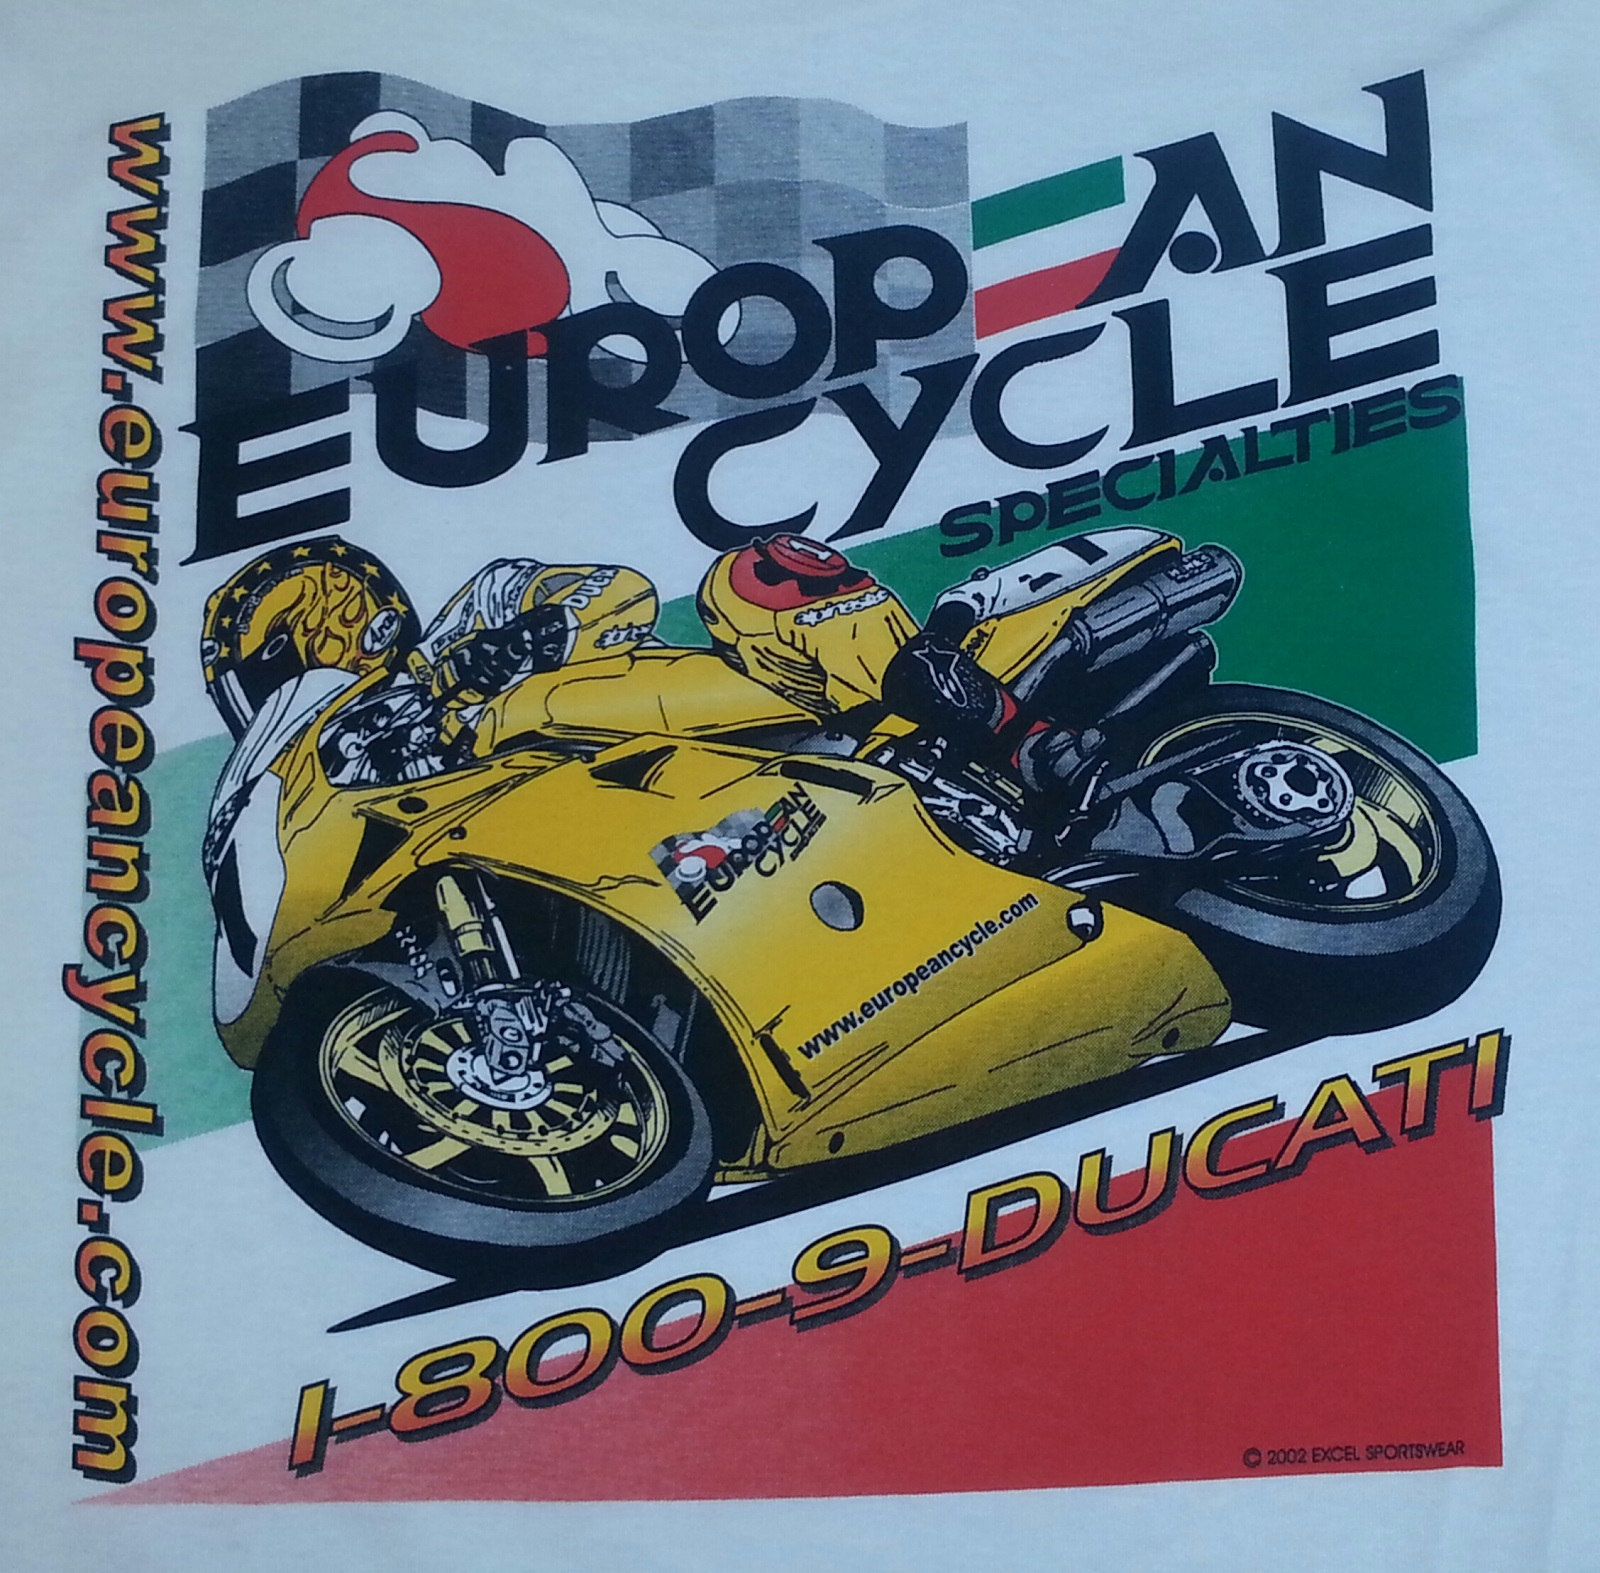 Ducati 996 Fuse Box European Cycle Specialties Shopping Cart Ecs Yellow 748 T Shirt